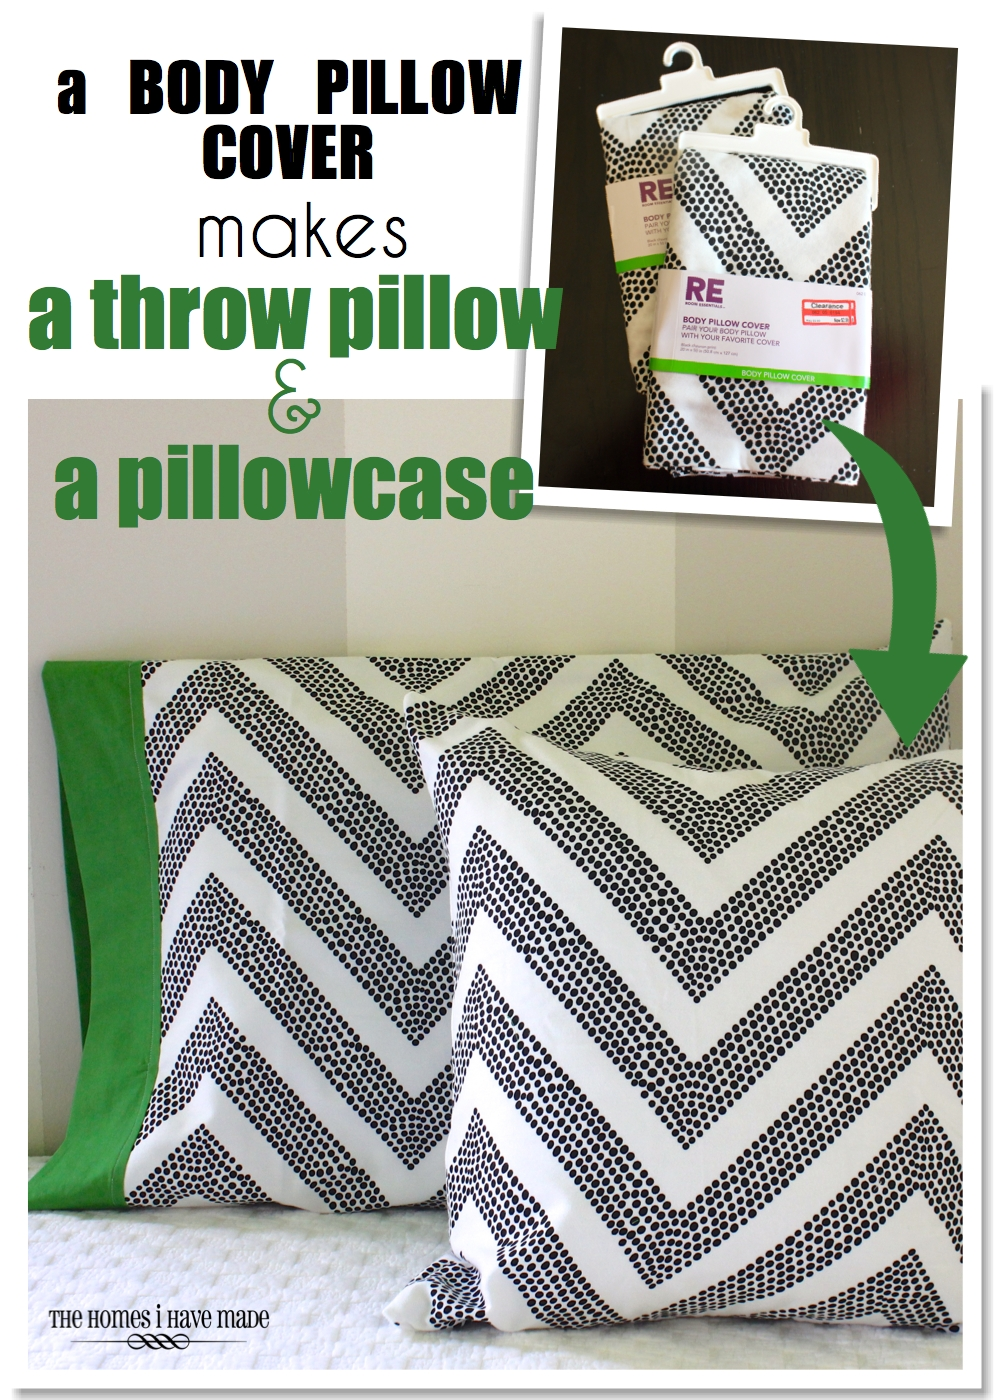 How To Make A Pillowcase From A Body Pillow The Homes I